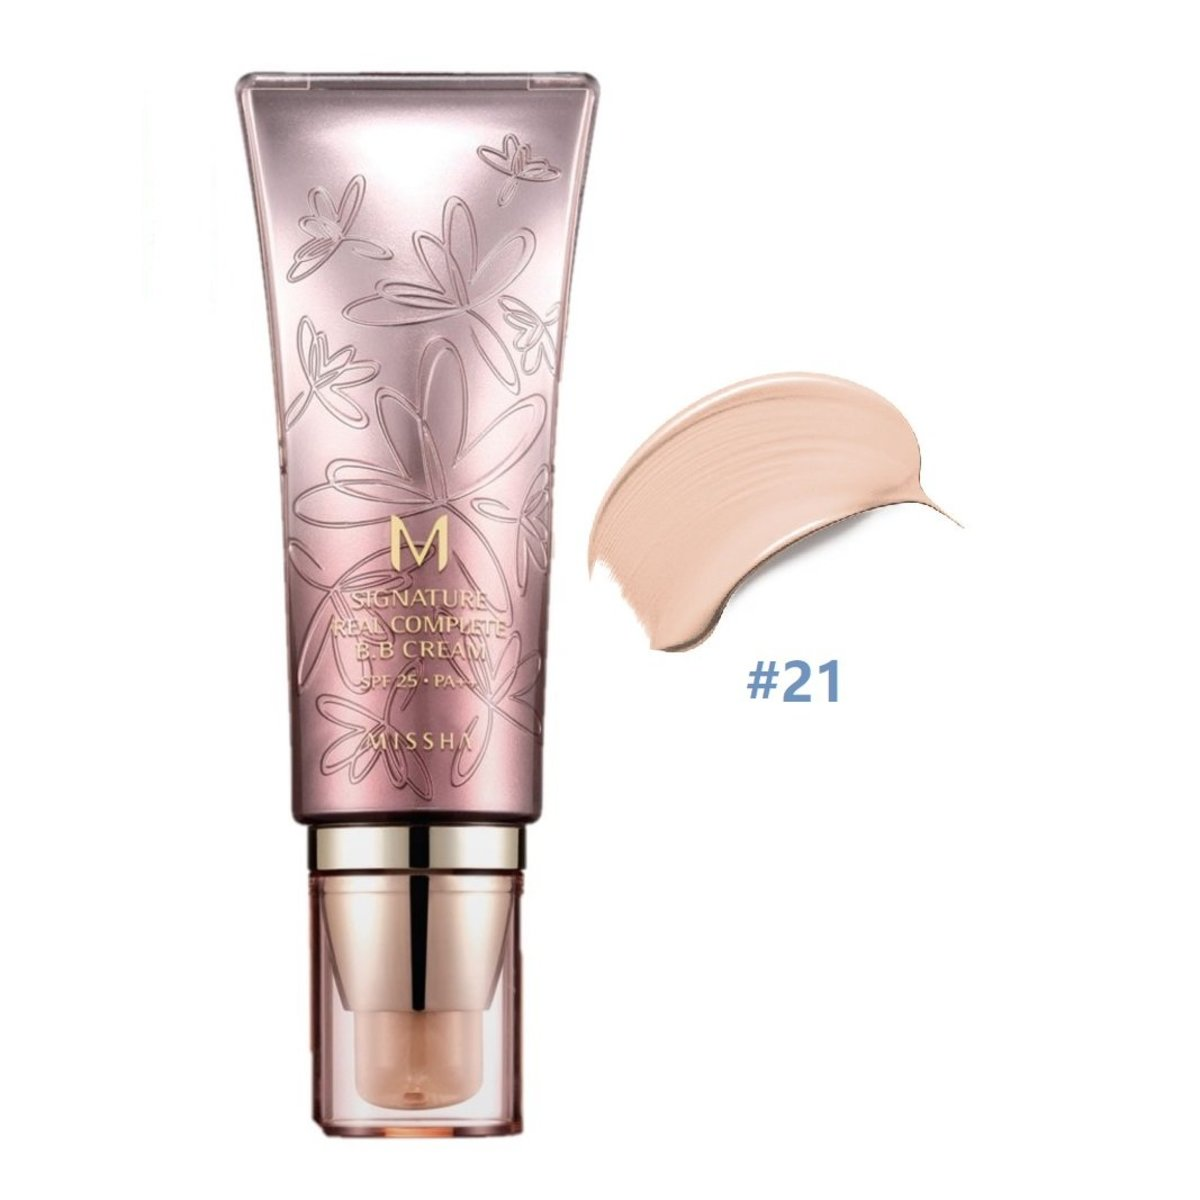 Missha - M Signature Real Complete Bb Cream Spf25 PA++ 21# 45g (Parallel Import)    (8806150661755)